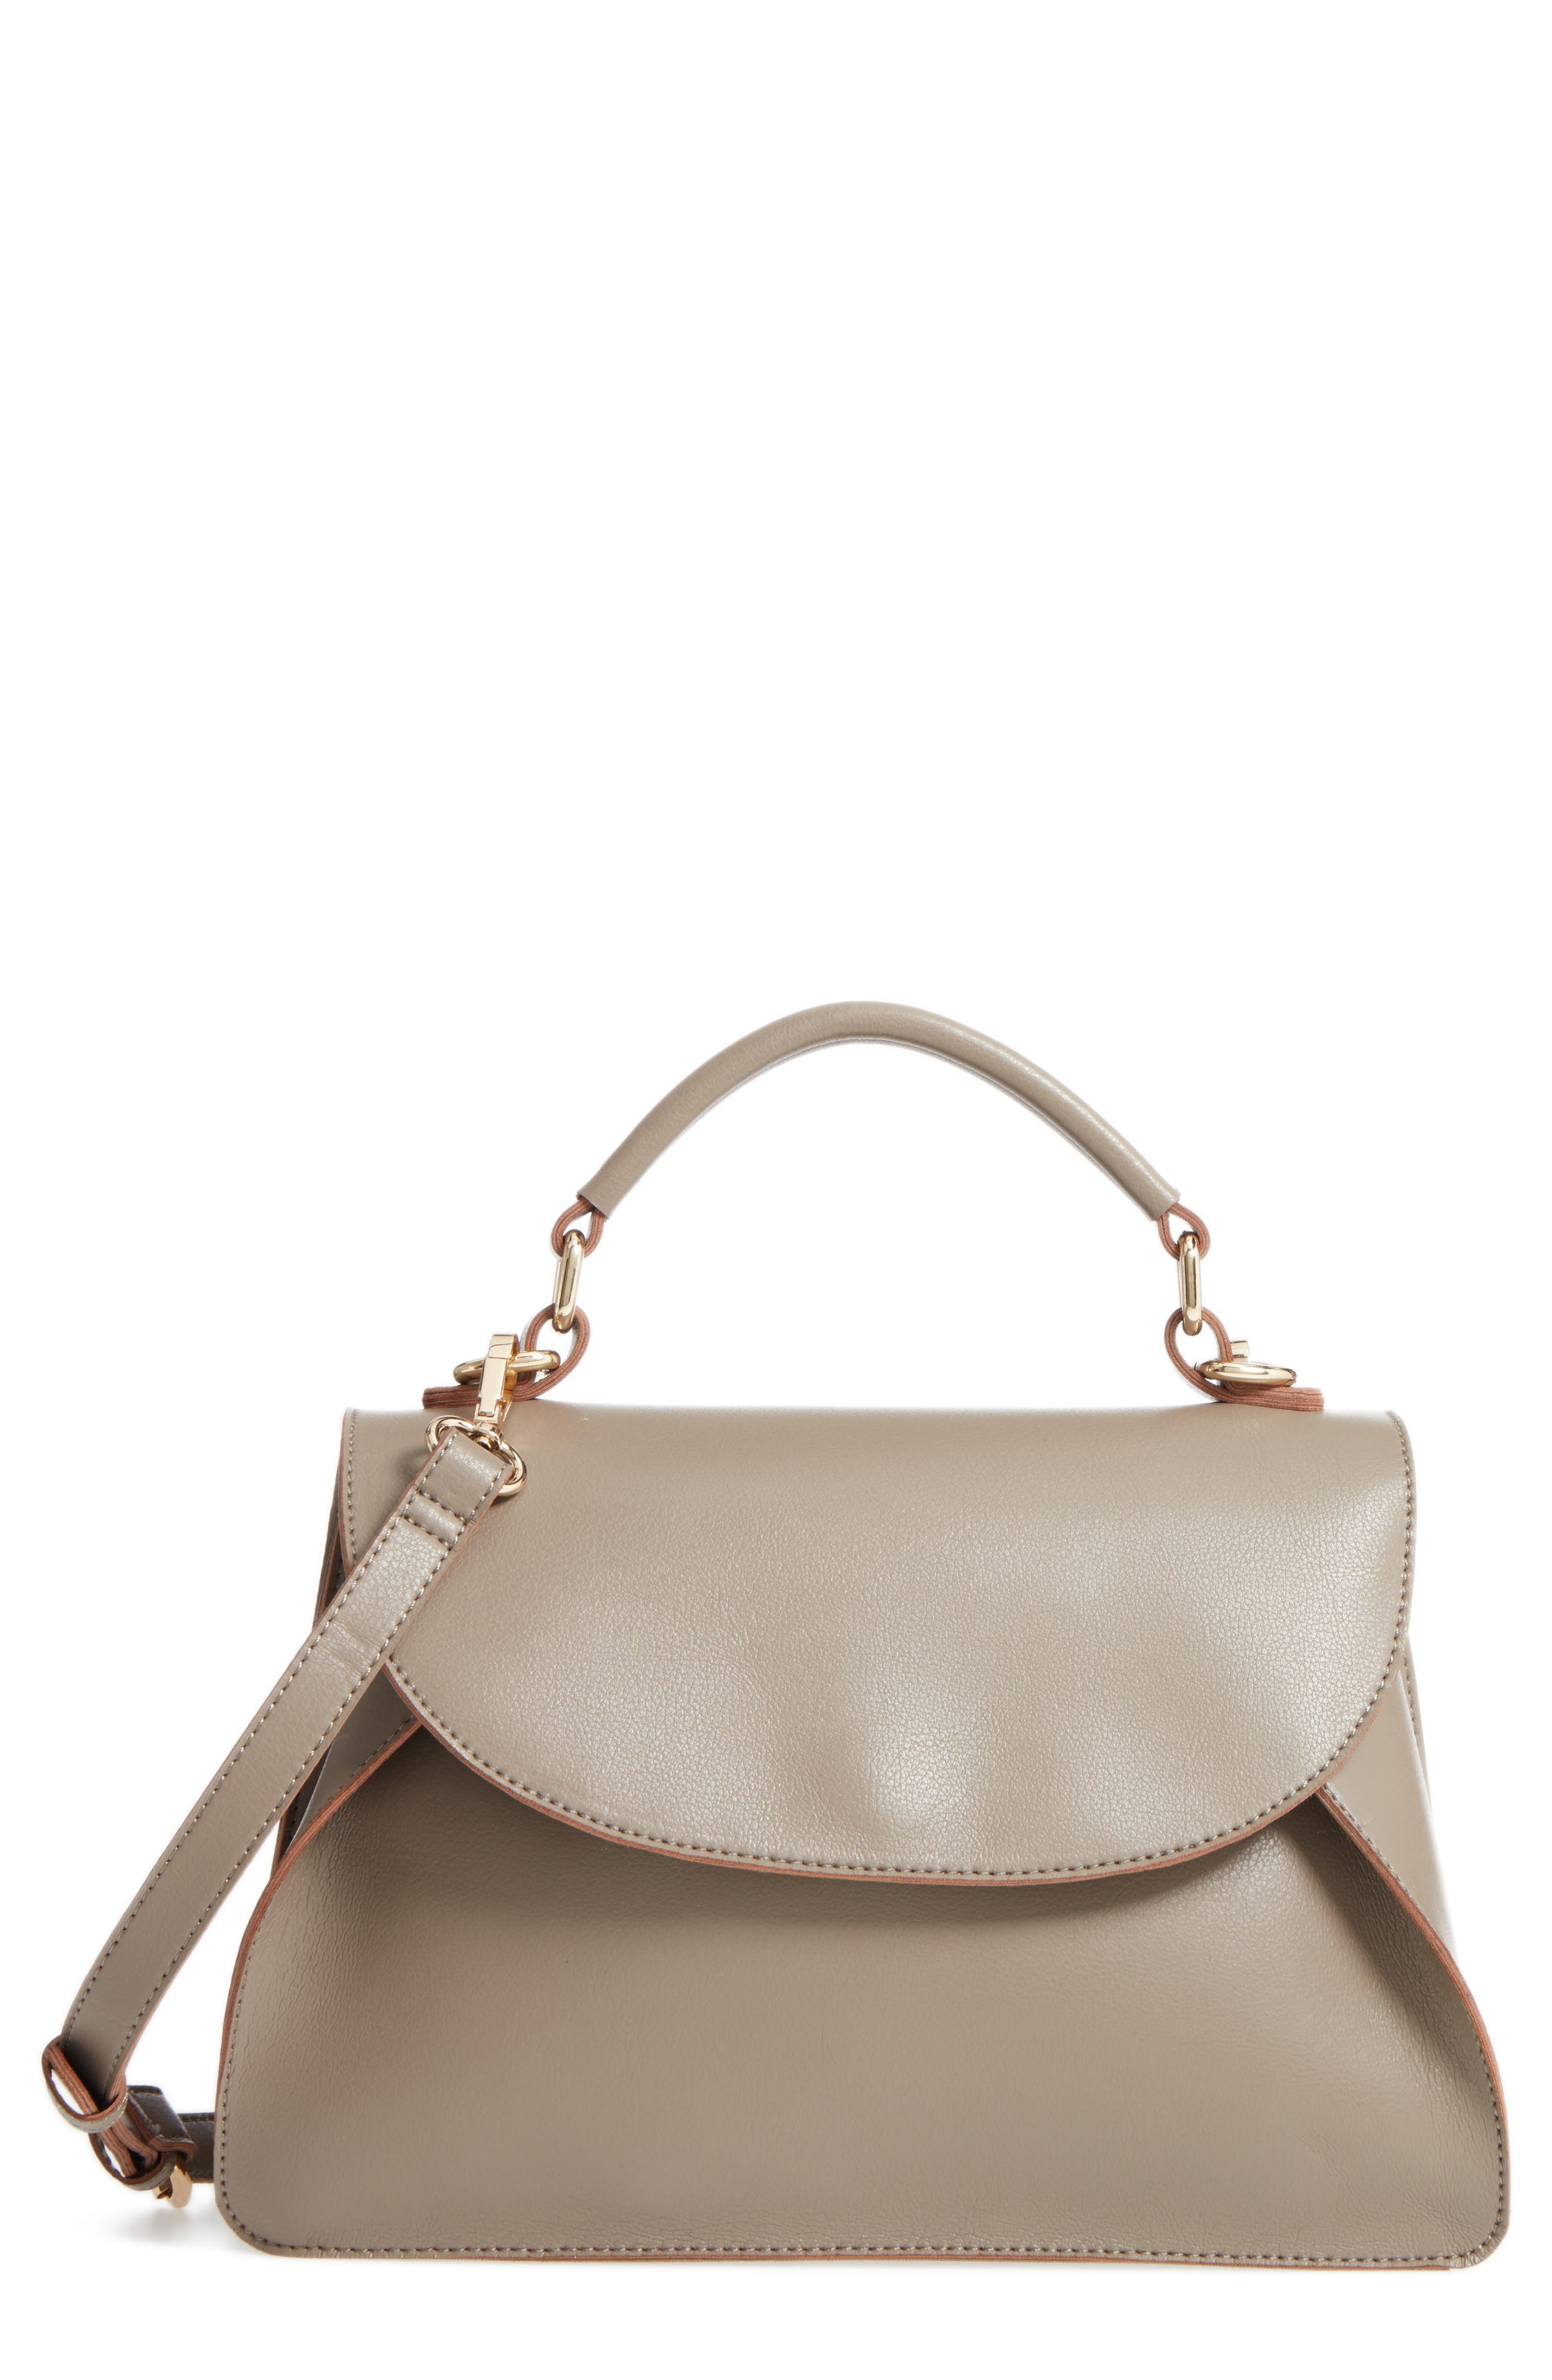 Izzy Faux Leather Top Handle Satchel,                         Main,                         color, Taupe